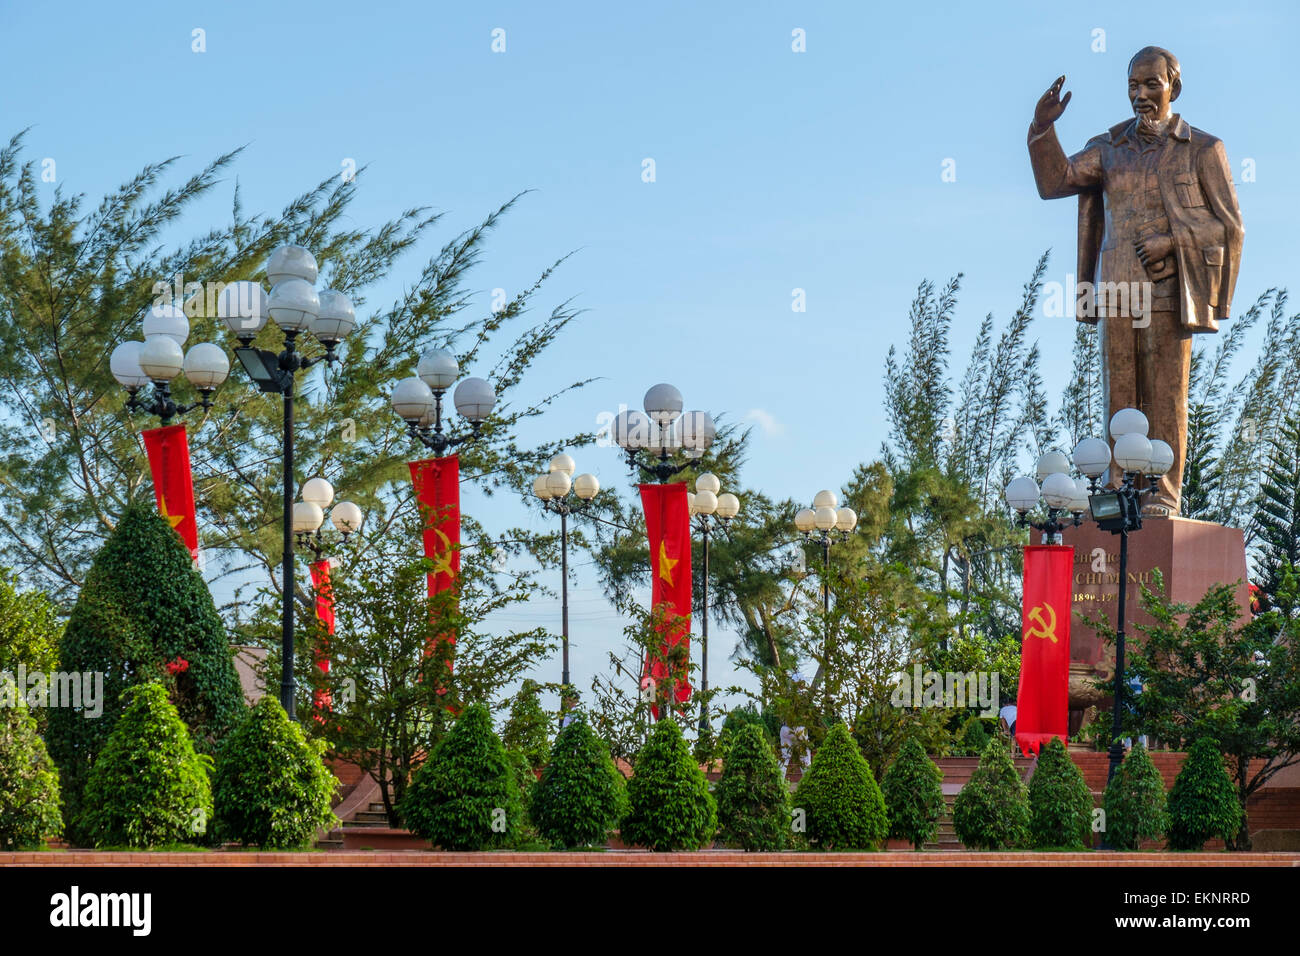 Ho Chi Minh Statue, Can Tho, Vietnam - Stock Image